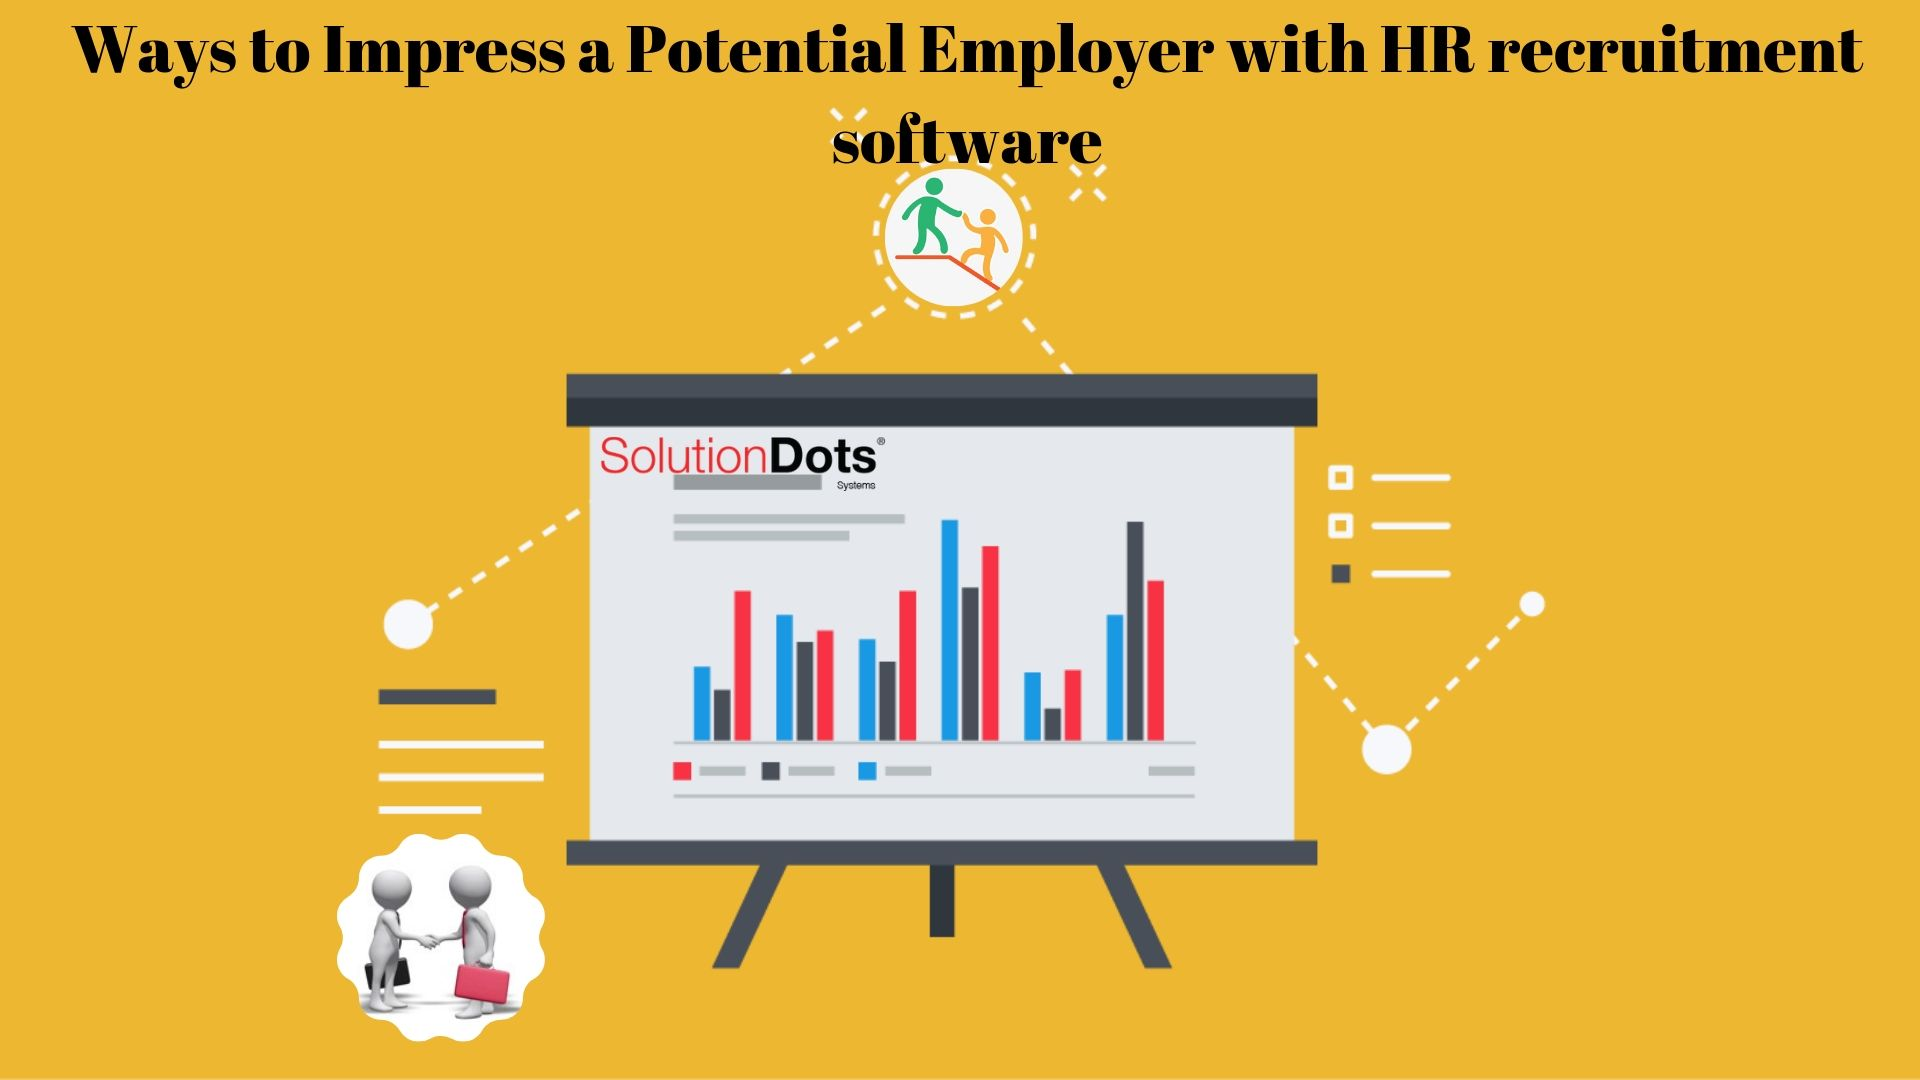 hr recruitment software